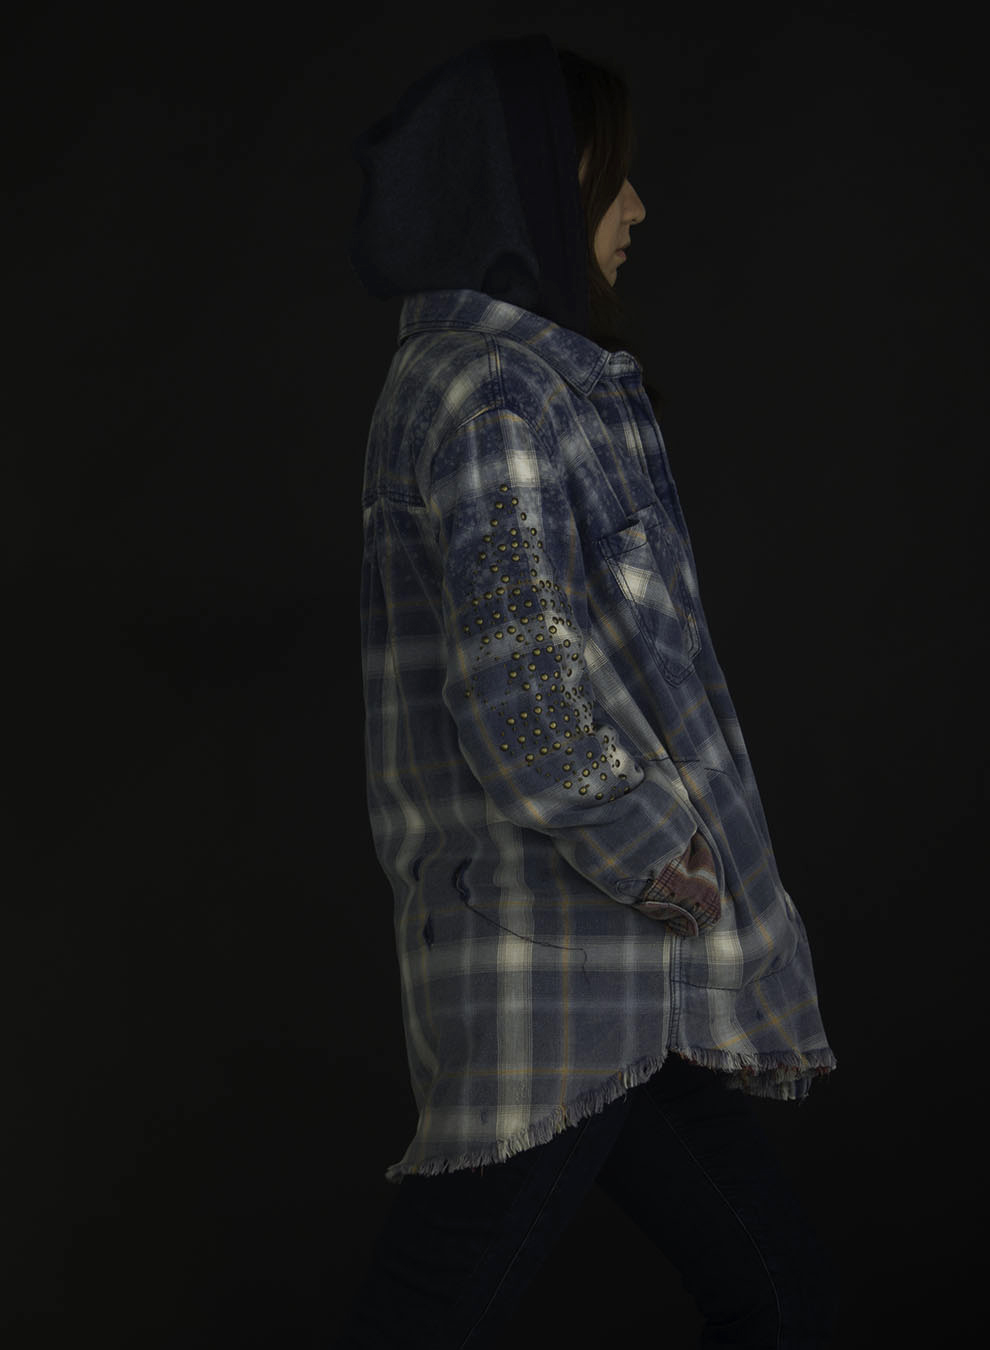 Joy_Lewis_fashion_JACKETS_FLANNEL_WITH_HOOD_HANDS_IN_POCKETS